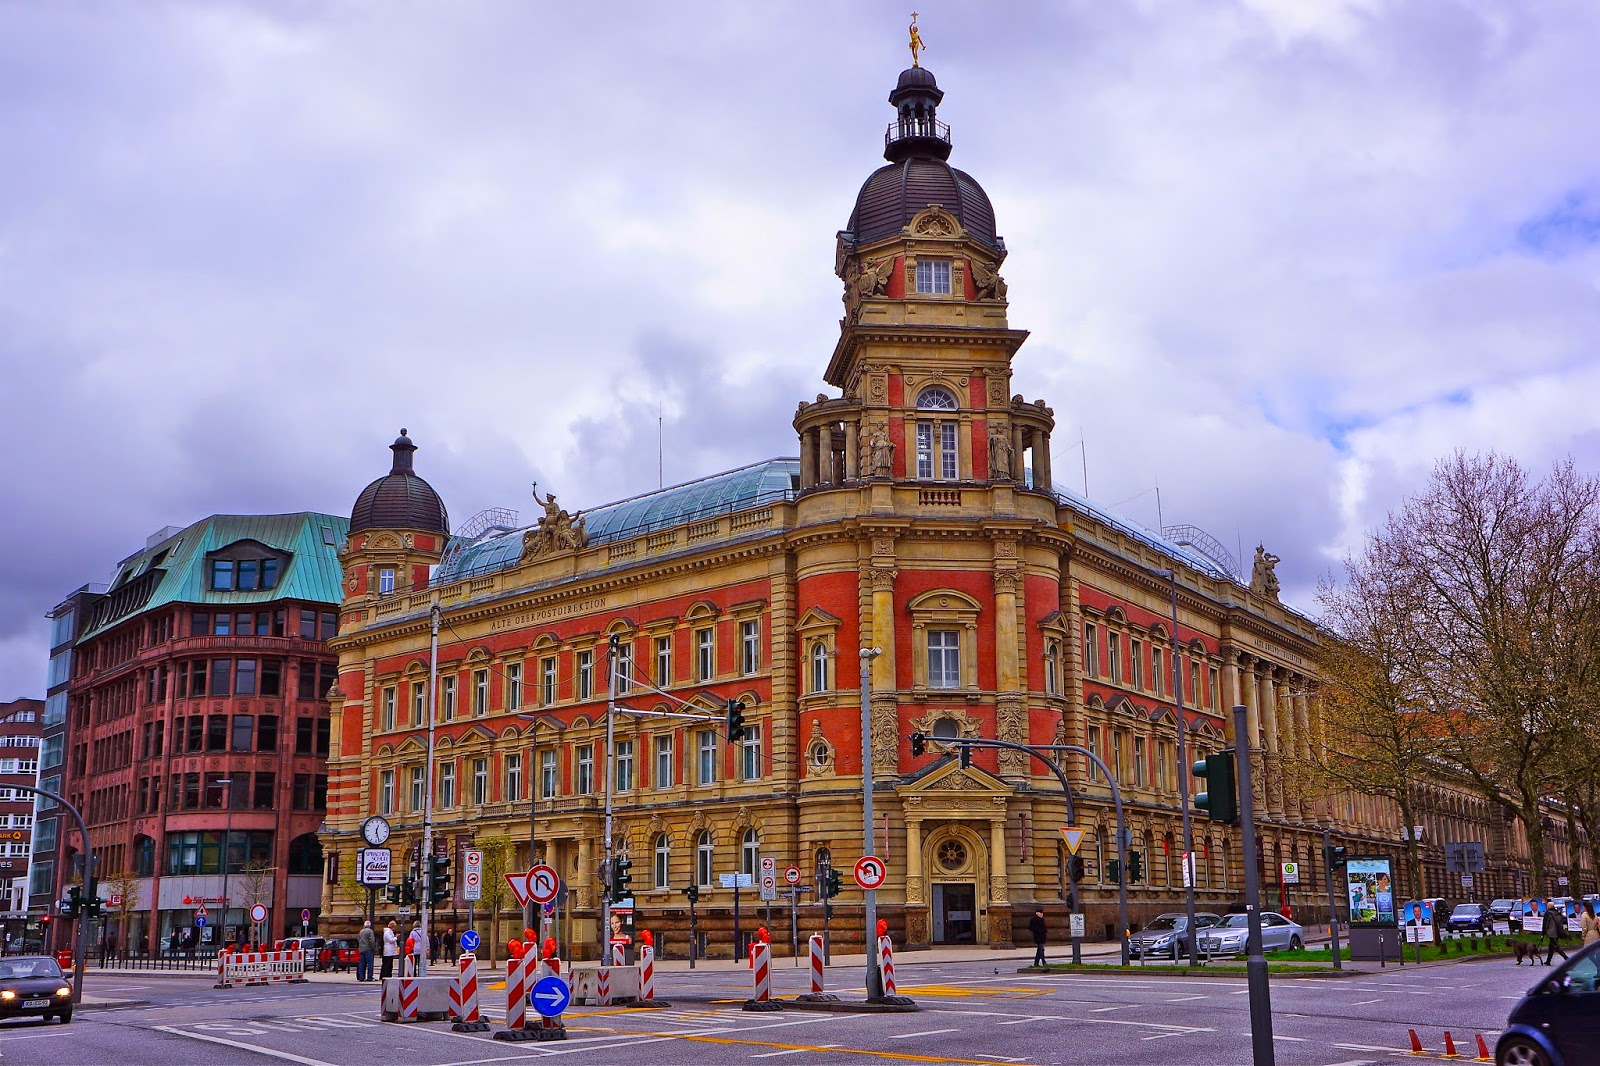 Picture of Alte Oberpostdirektion Hamburg (the former main post office) in Stephansplatz.